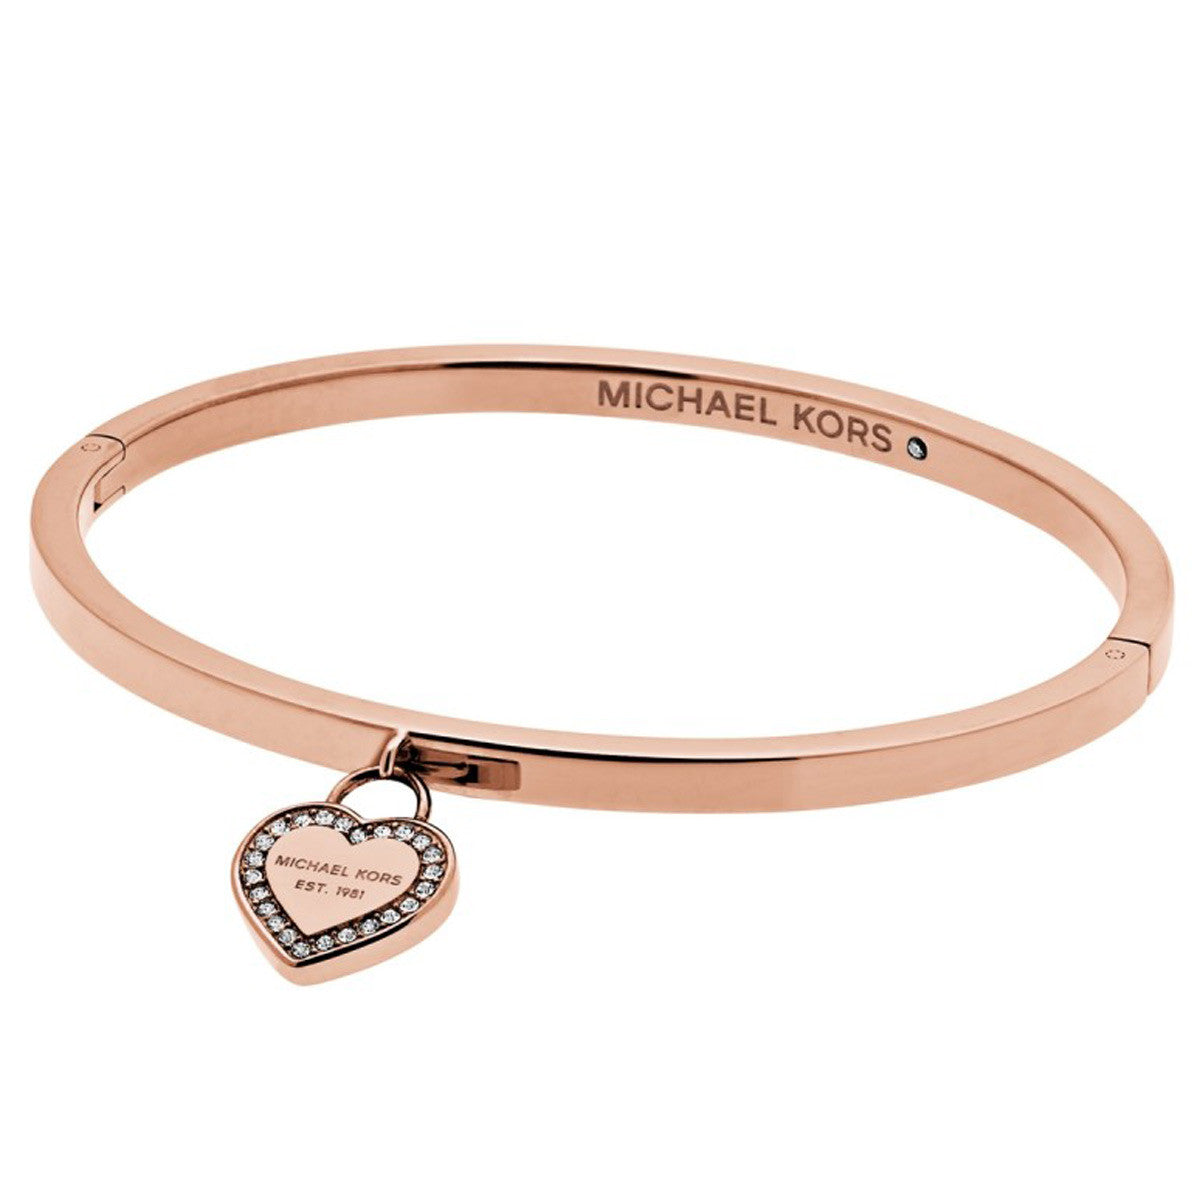 Michael Kors MKJ5039791 Women's Symbols Crystal Accented Rose Gold Steel Charm Bangle Bracelet